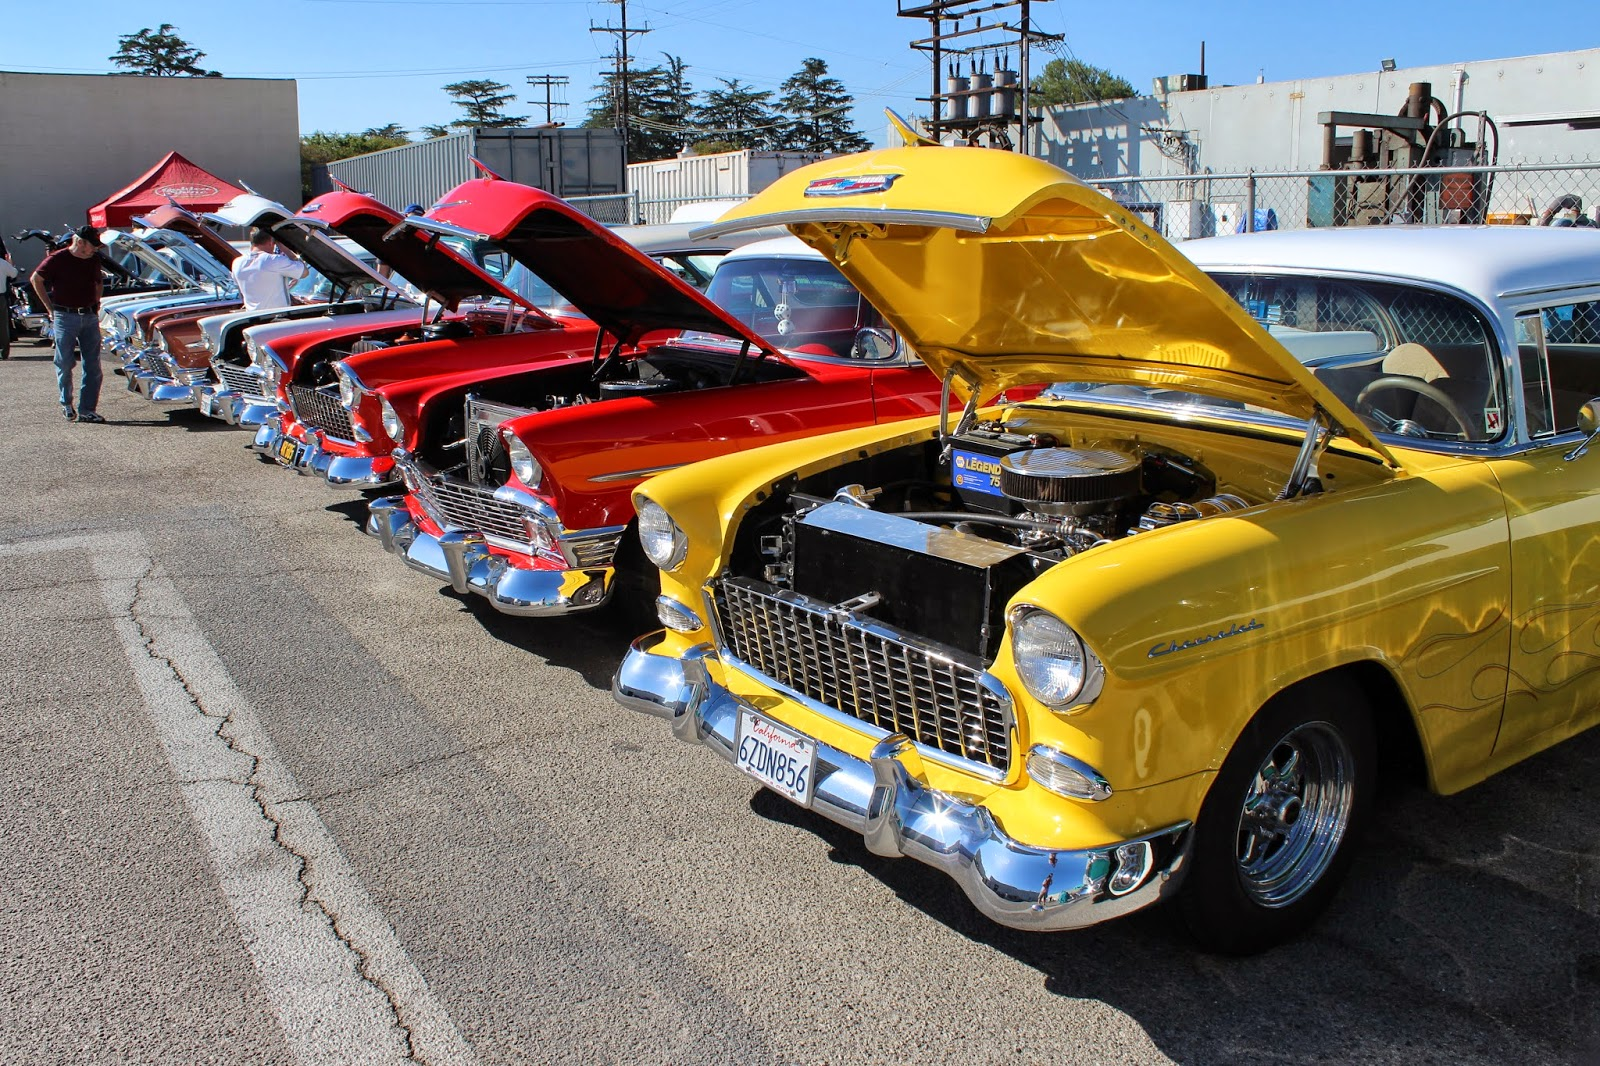 Covering Classic Cars Classic Chevy Car Show At California Car Cover - Classic show cars